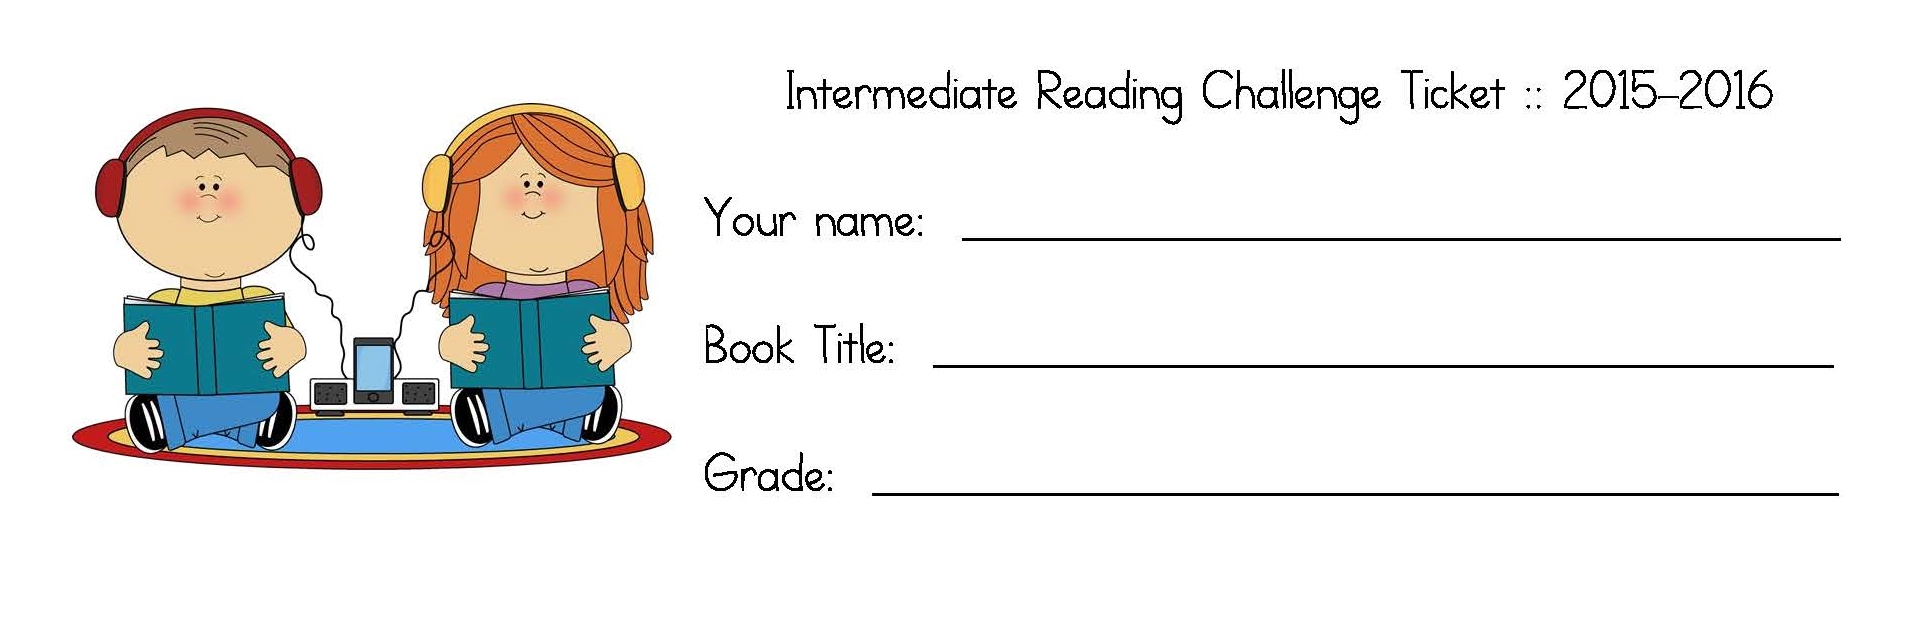 Intermediate Reading Challenge Ticket (2).jpg